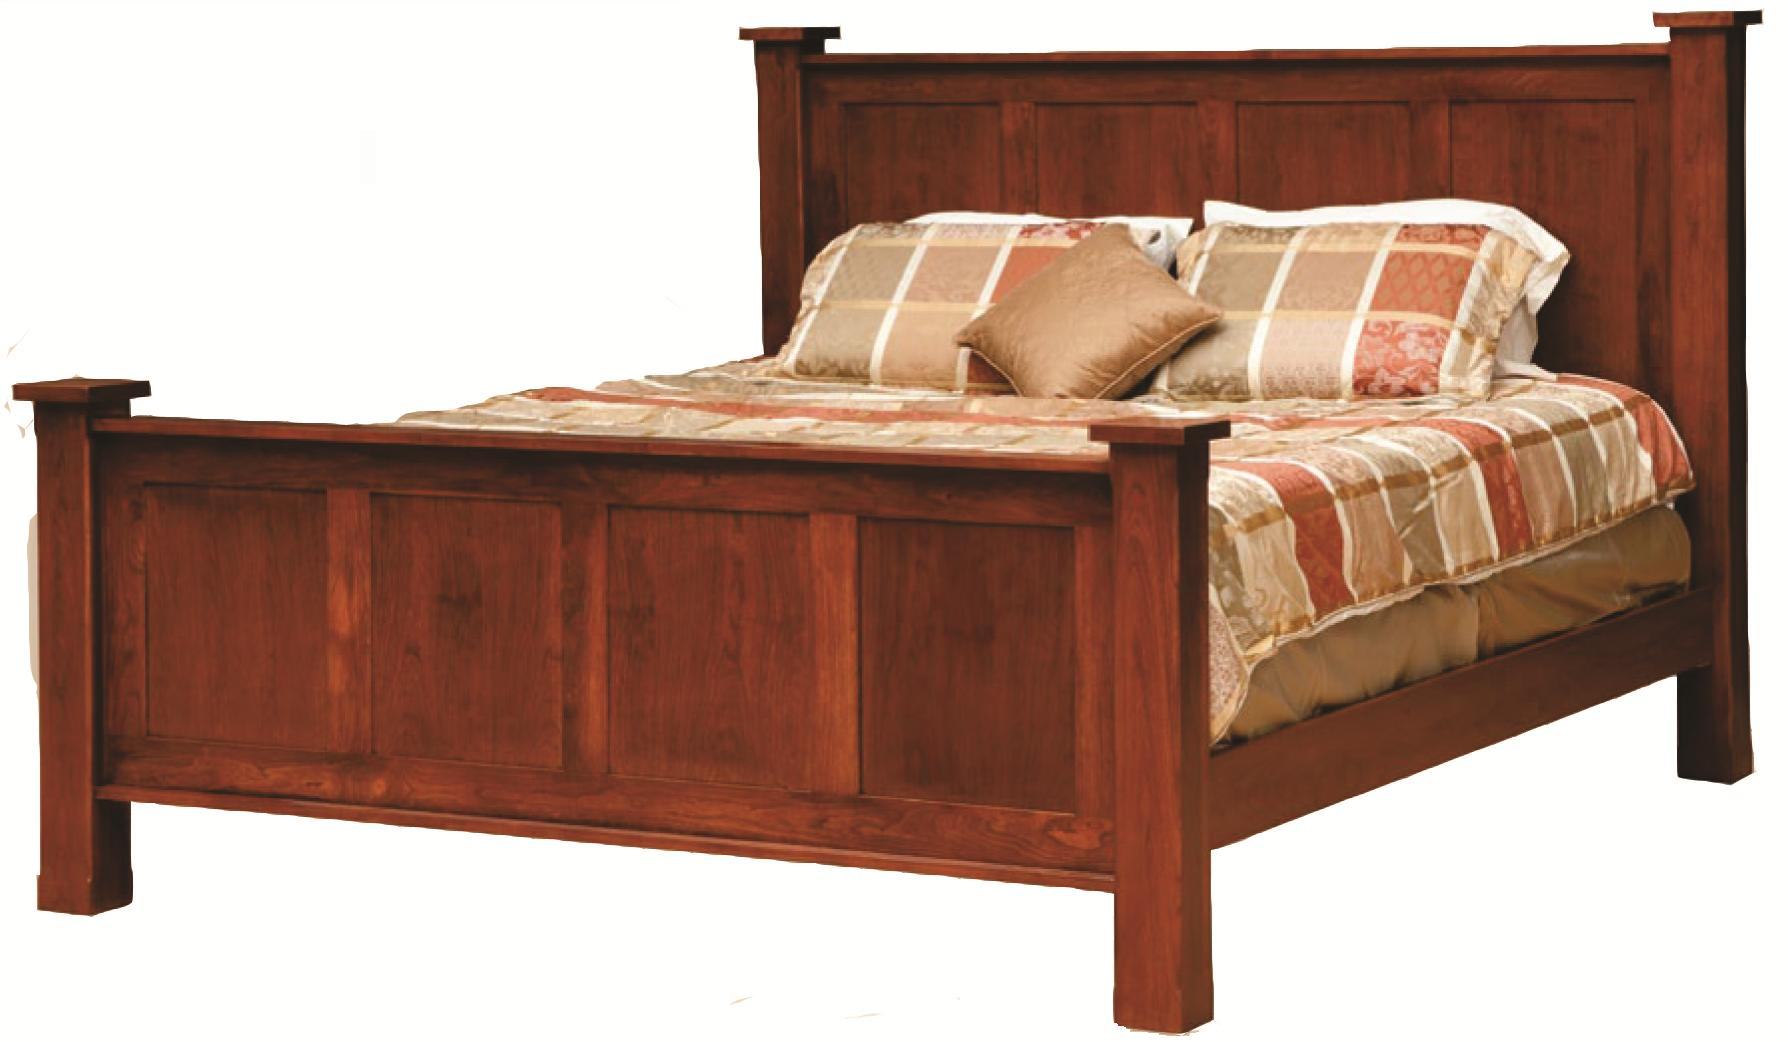 king handcrafted frame bed - Frame Bed